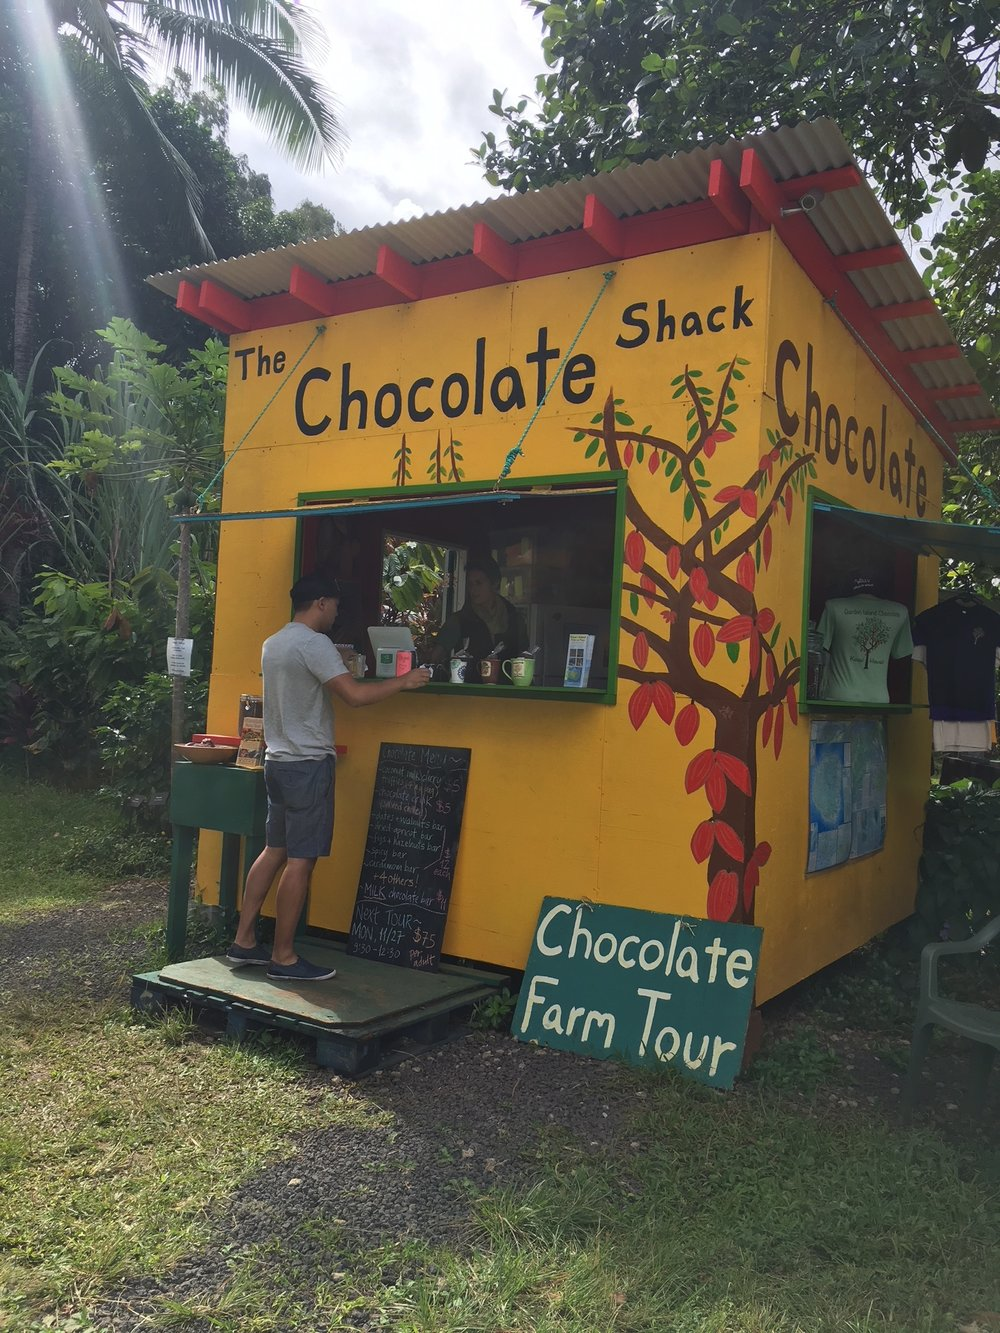 Local made chocolate - If your'e craving some sweets and chocolate, The Chocolate Shack will take care of it.